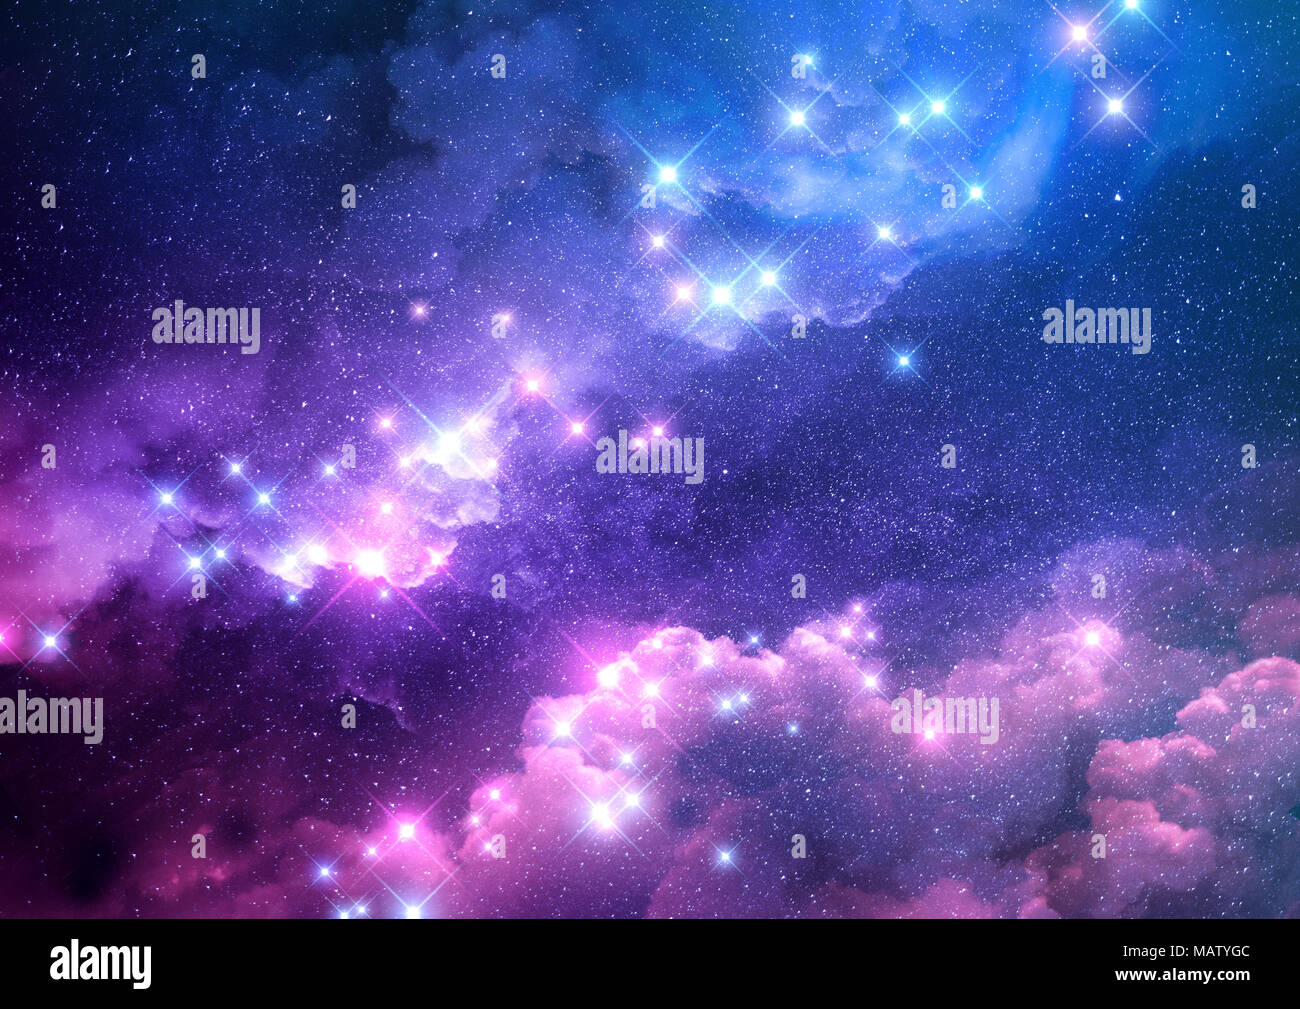 Abstract pink and blue galaxy background filled with bright stars. Raster illustration. - Stock Image